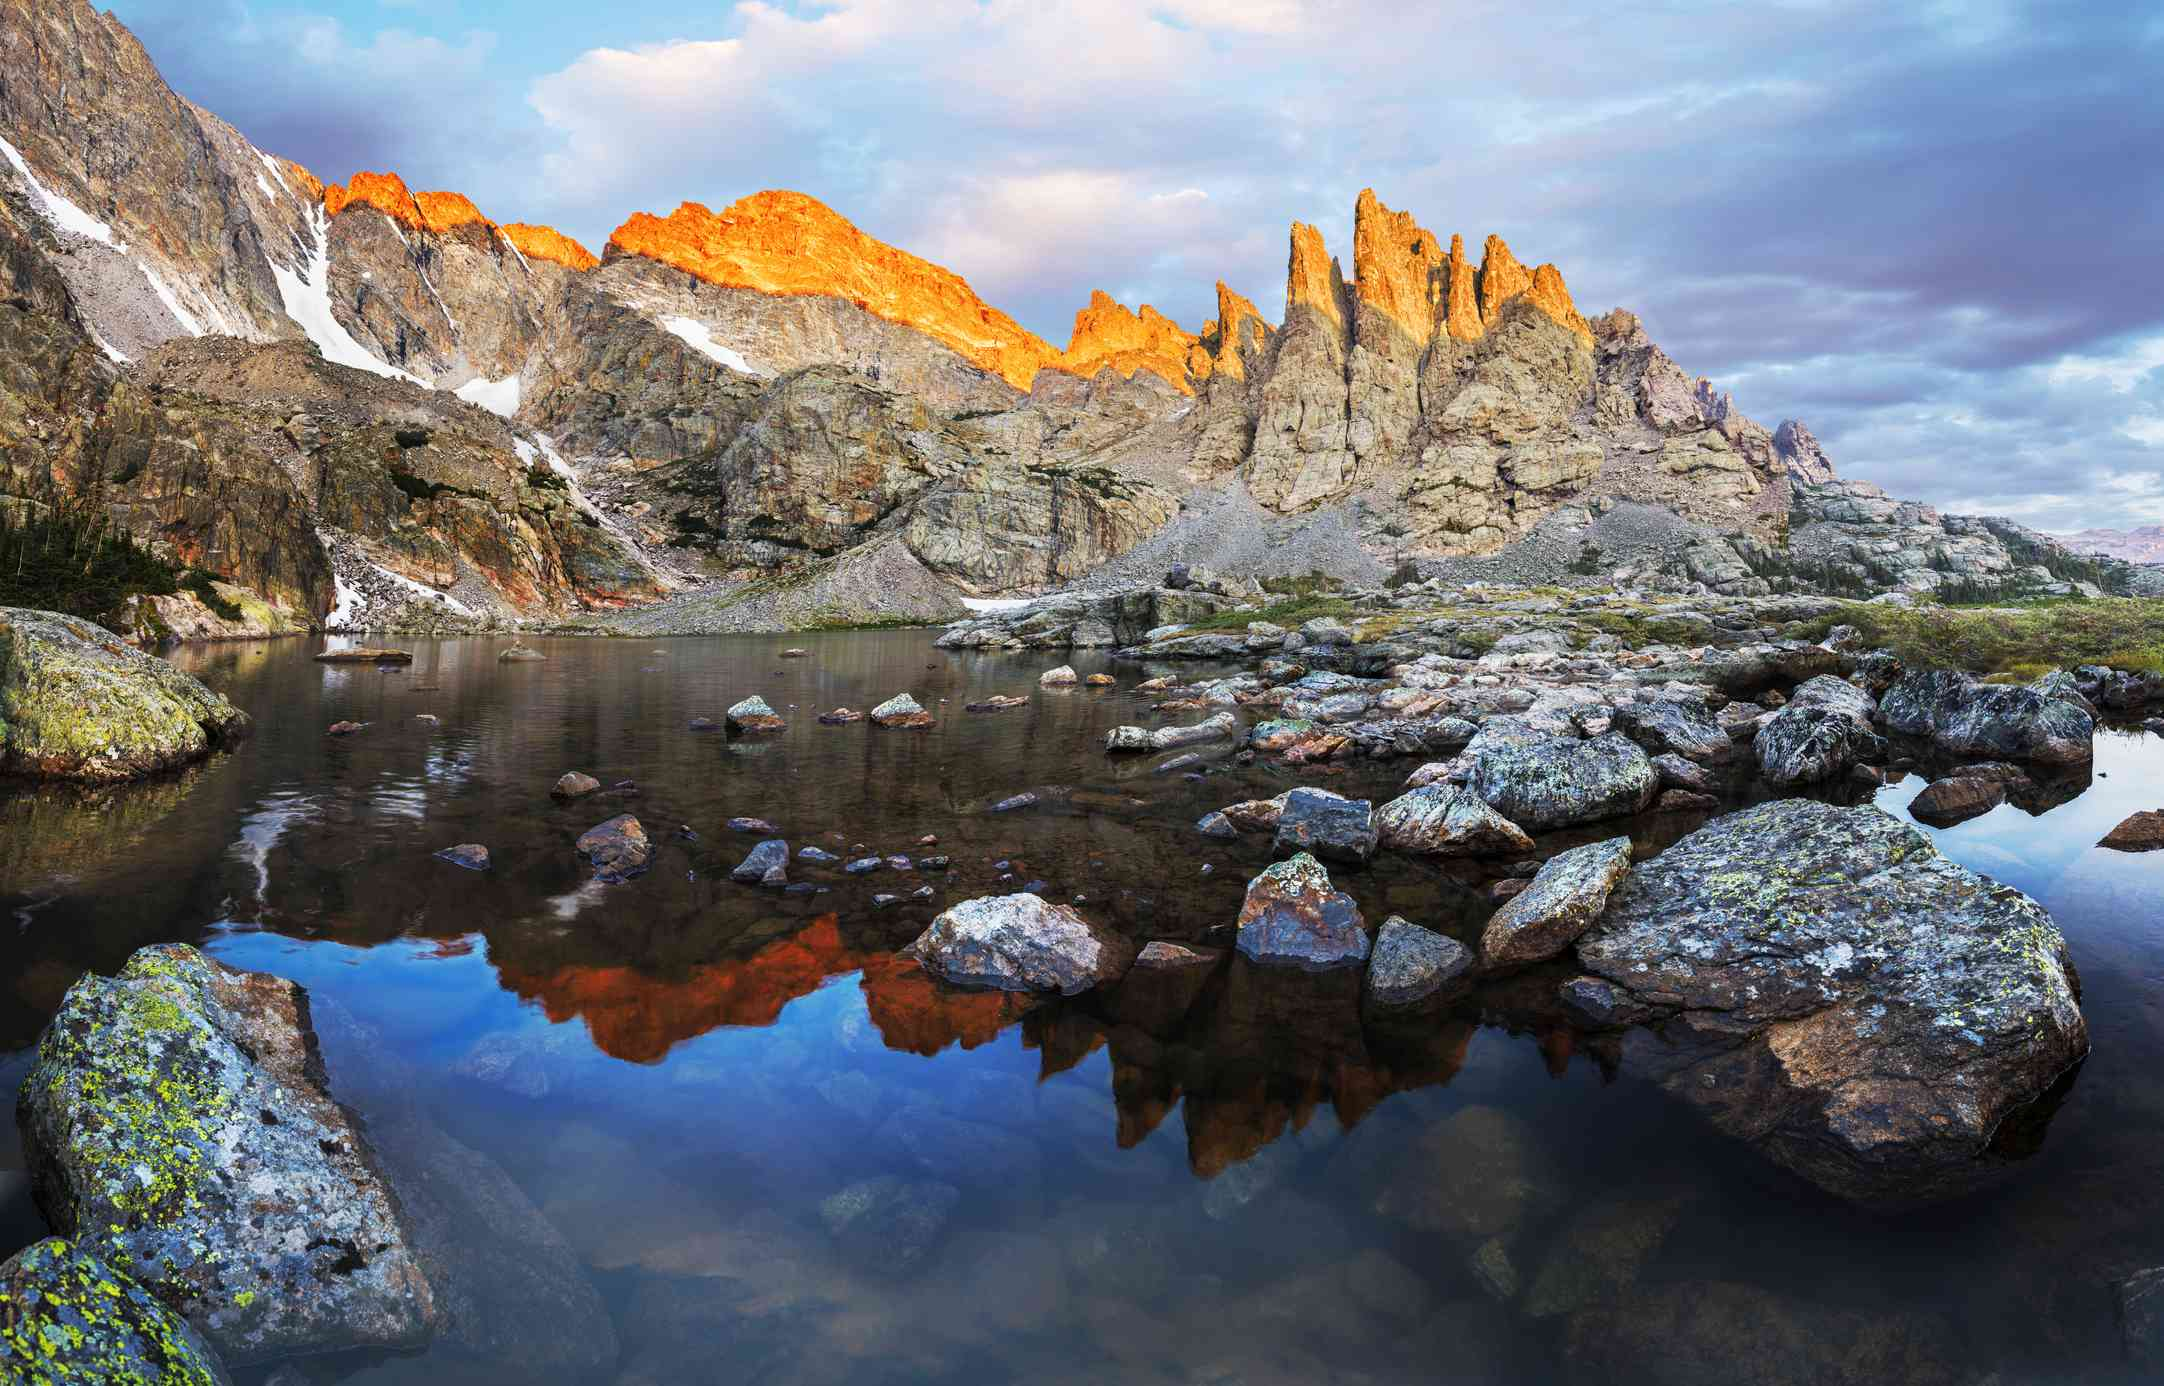 Photograph capturing Alpenglow on the sharks teeth above Rocky Mountain National Park Sky Pond